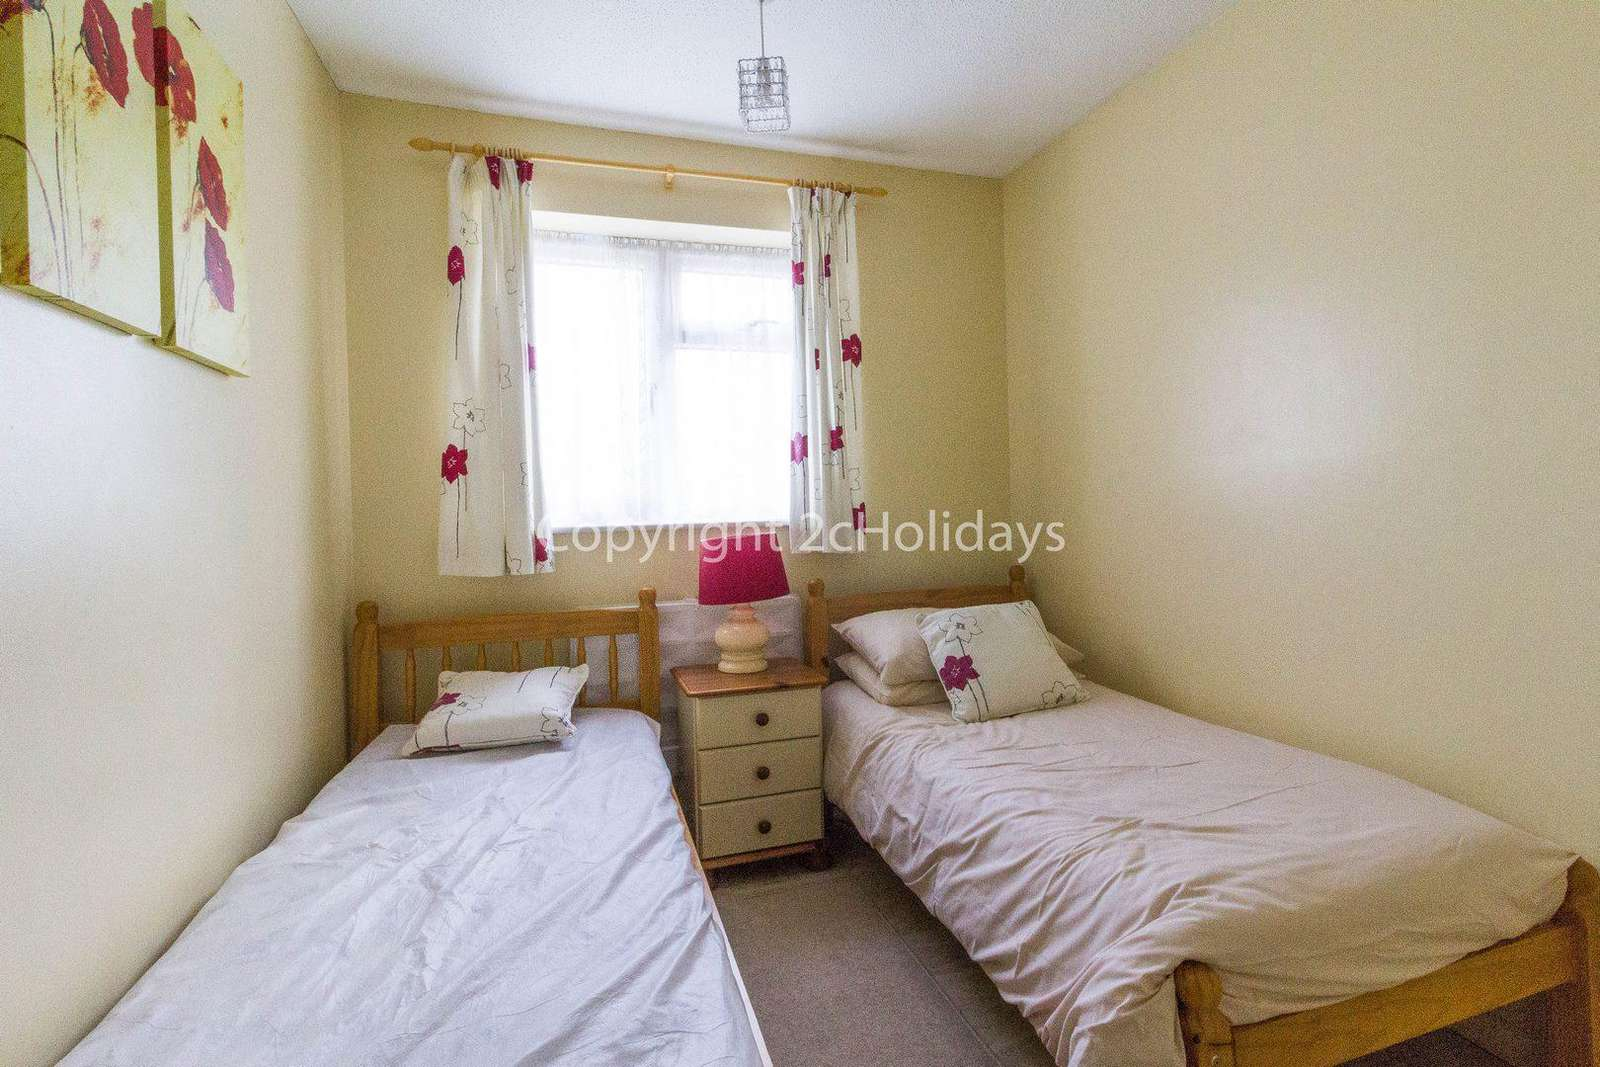 Twin room and storage in this luxury chalet to hire in Hemsby